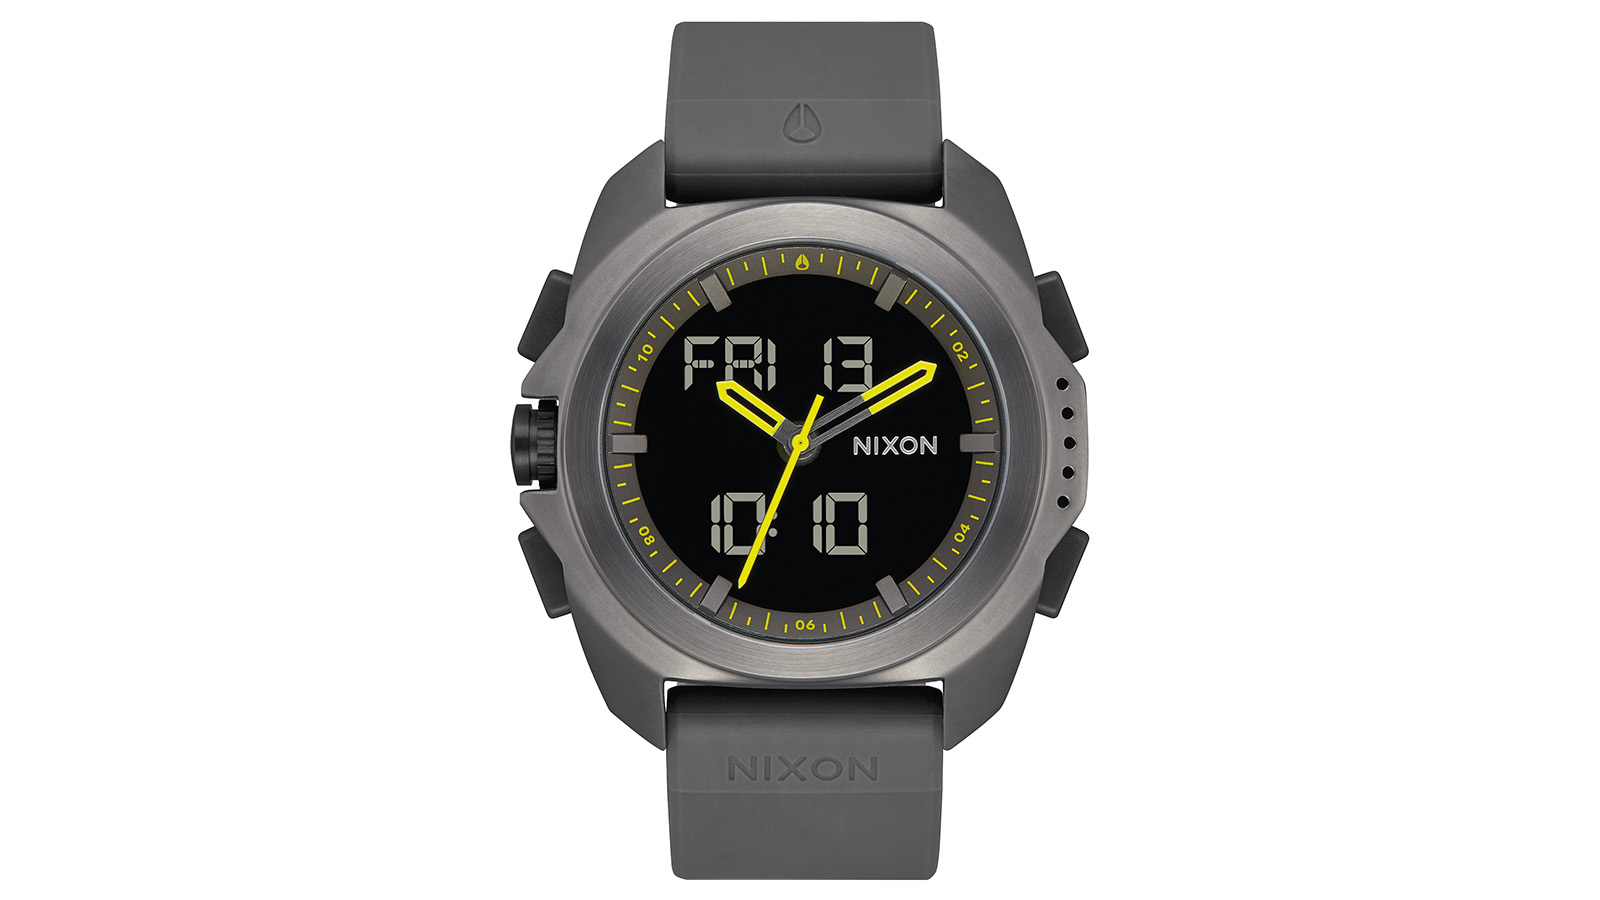 NIXON SS20 Watches